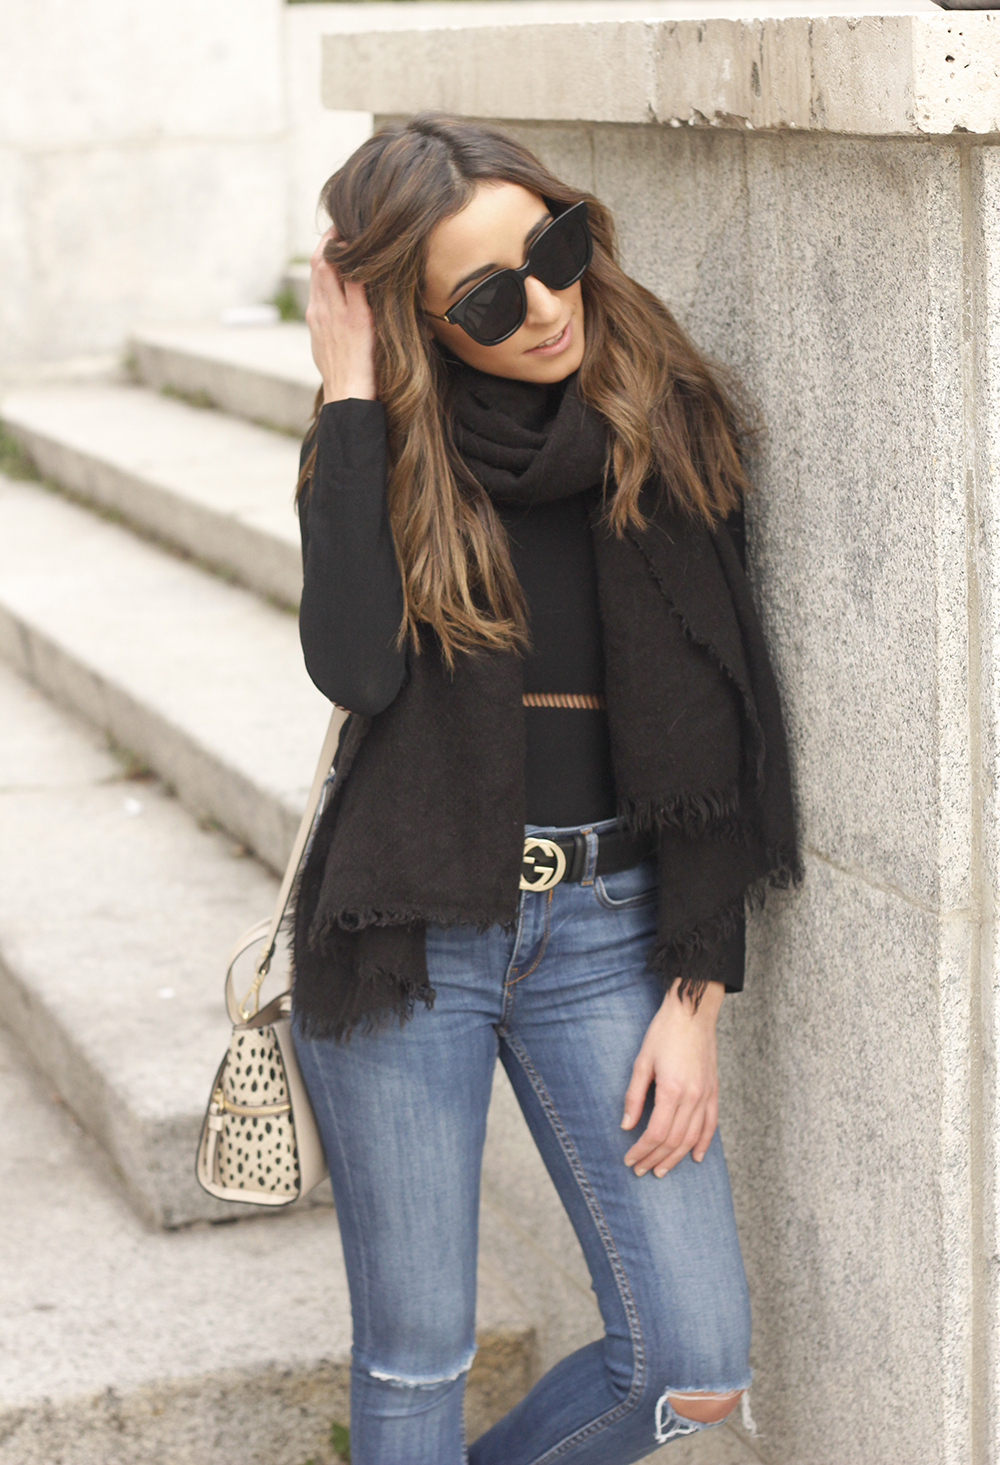 black sweater jeans gucci belt outfit style fashion scarf acosta bag07